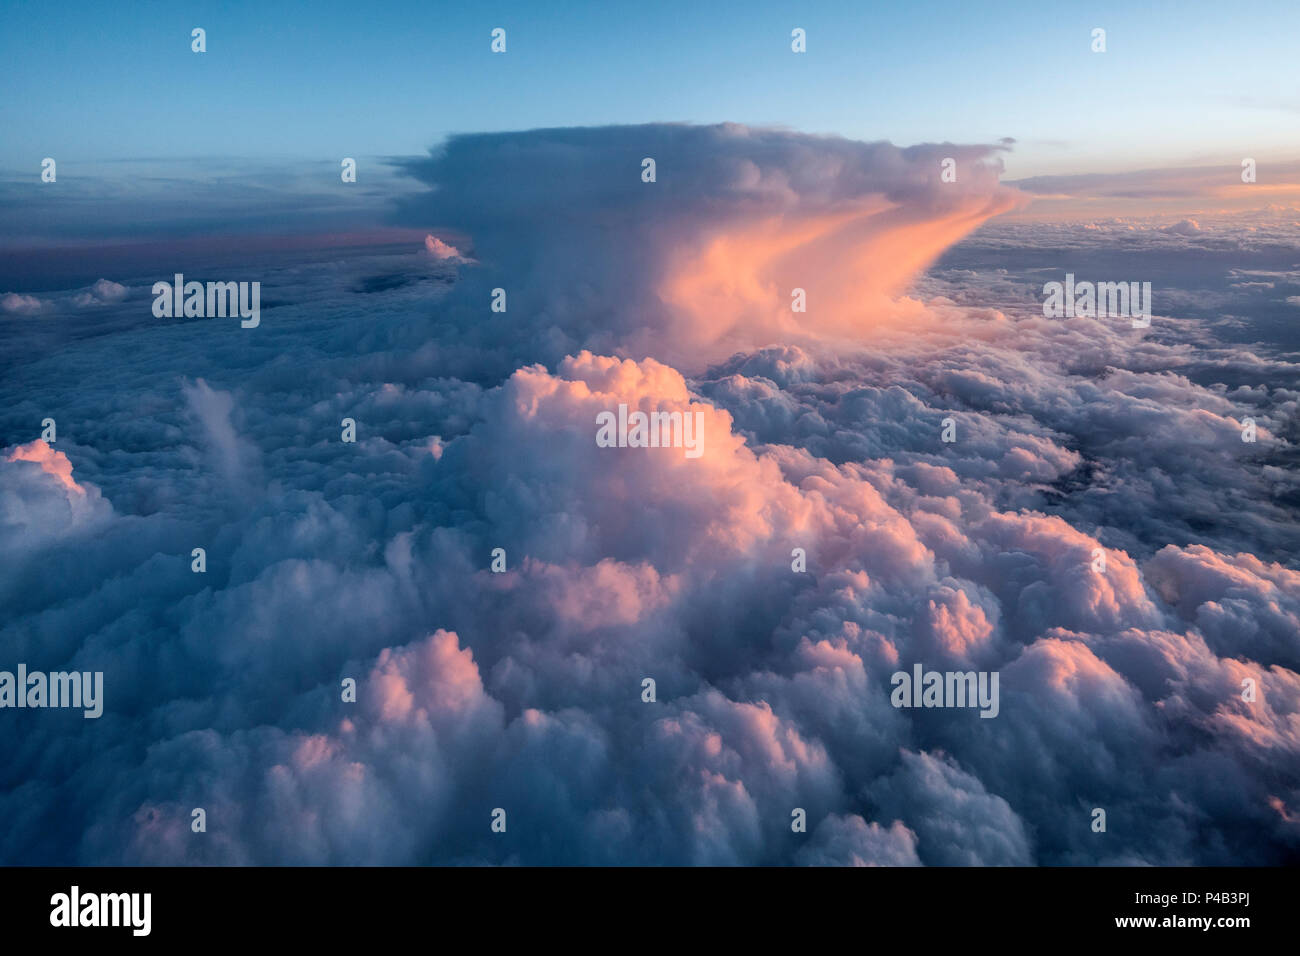 Summer storm clouds seen outside passenger airplane window at sunset, Orlando, Florida - Stock Image